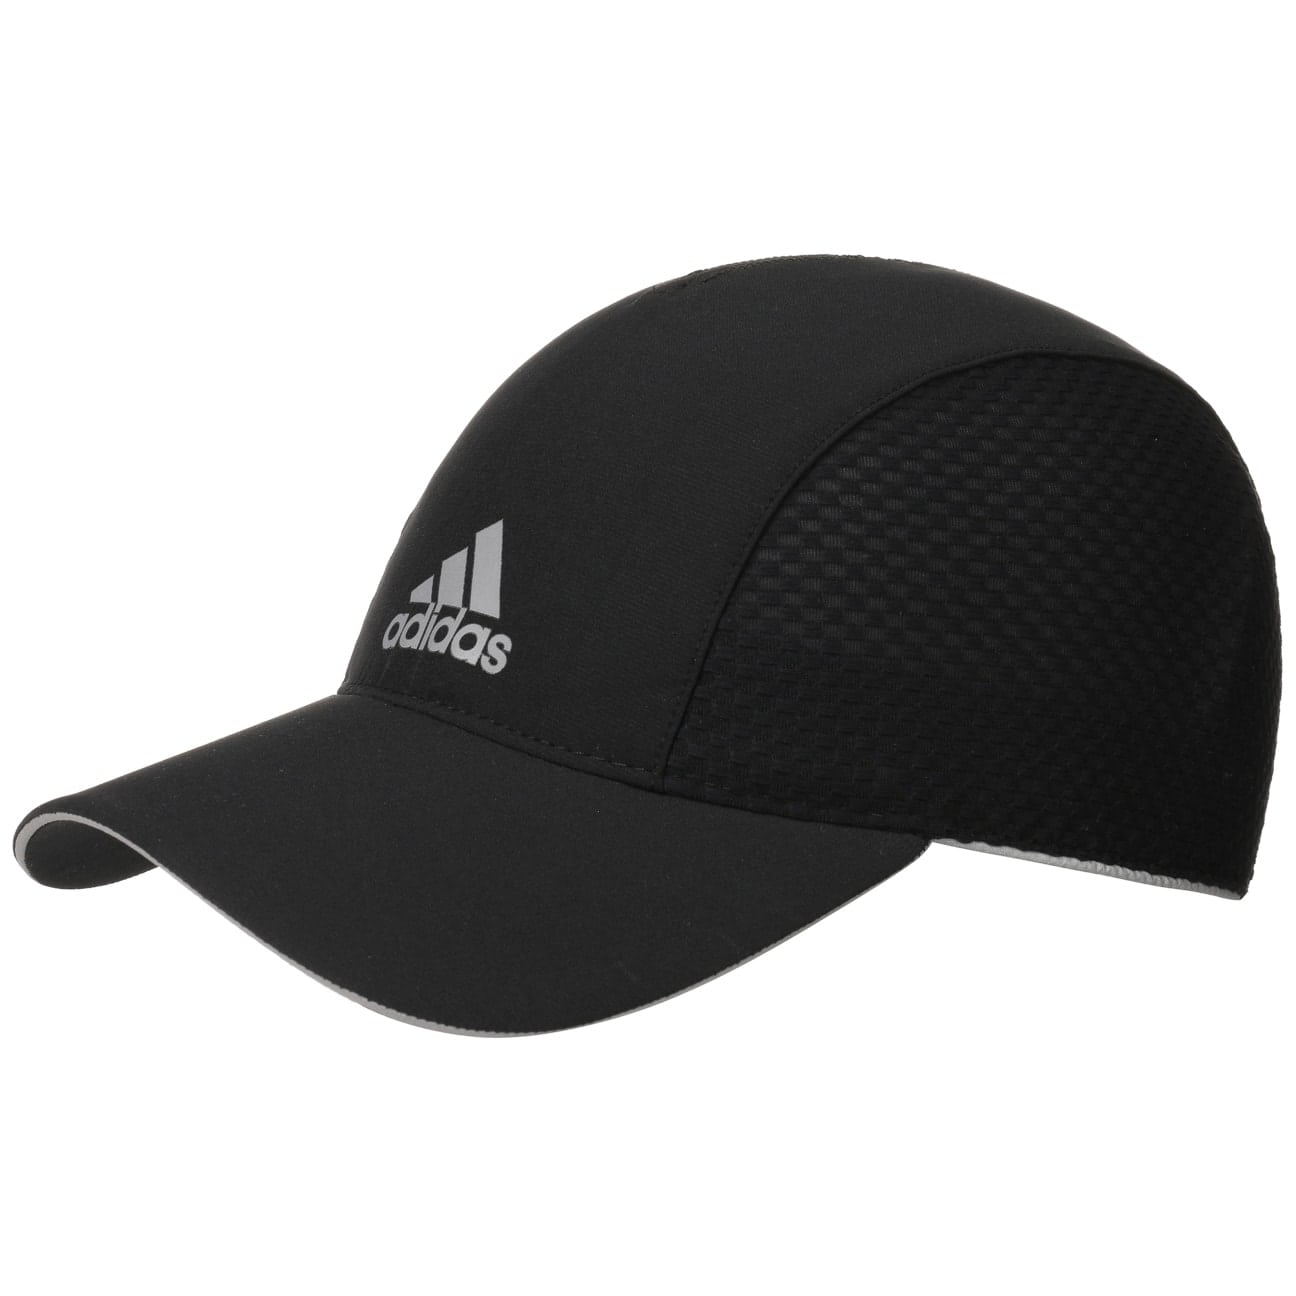 ... nero 5 · Run Climacool Cap by adidas - bianco 4 ... a8a76600bf8e